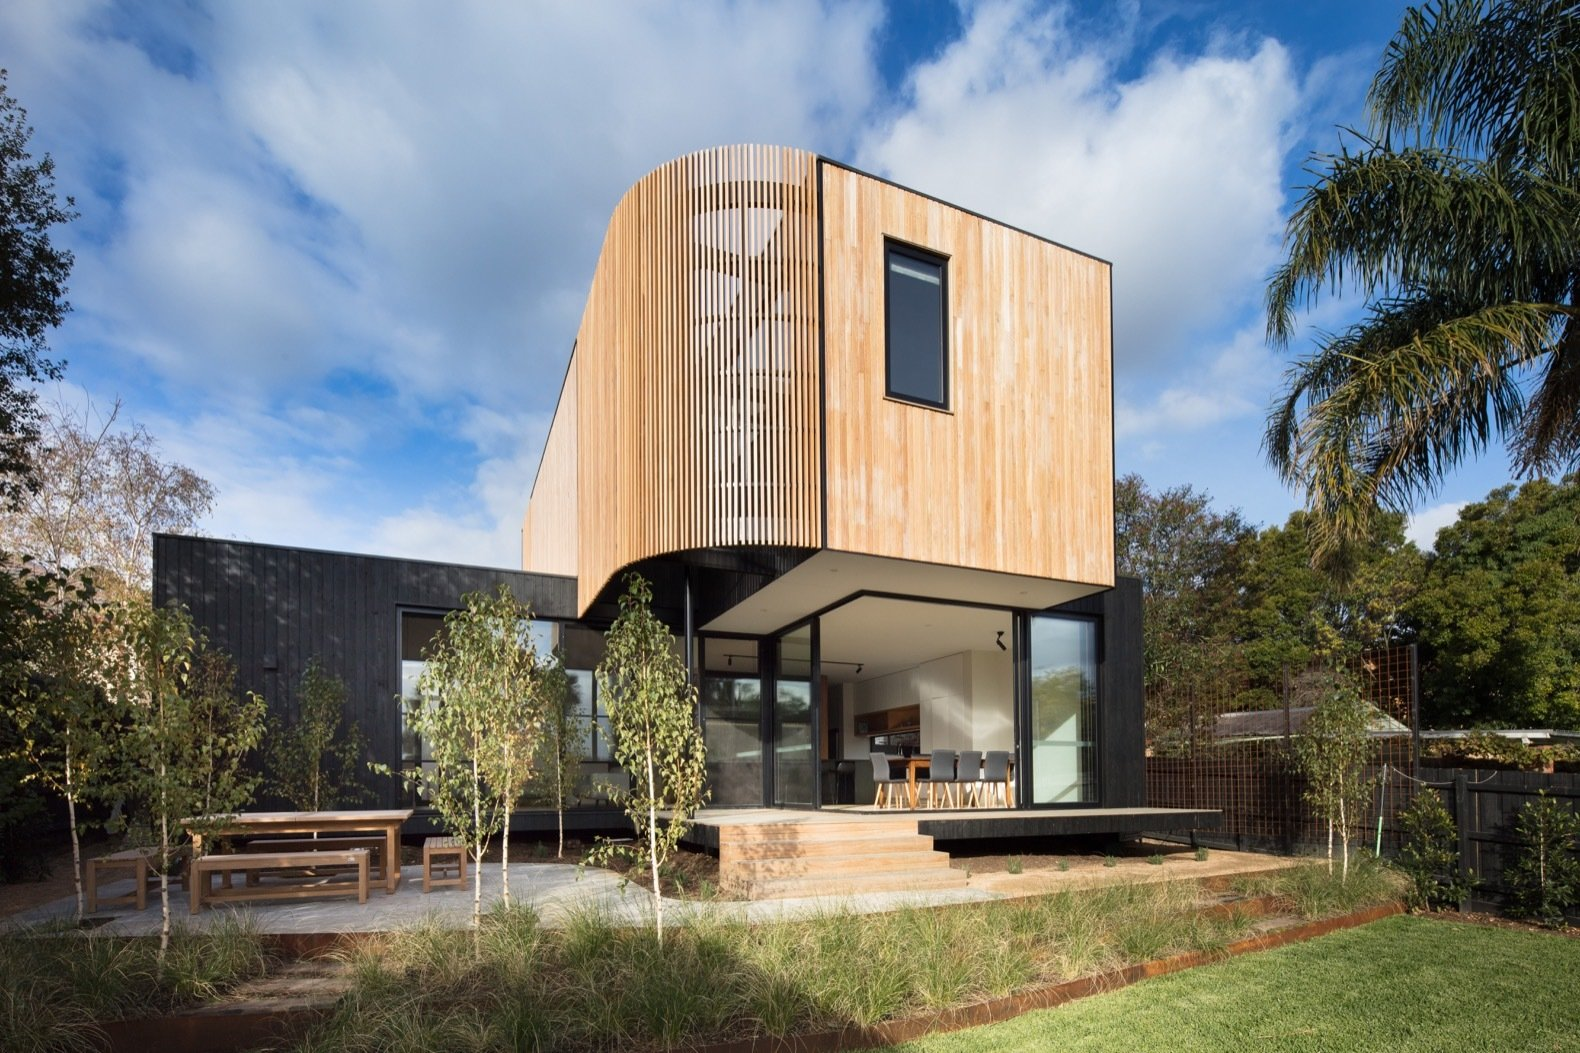 Photo 1 of 18 in A Melbourne Home Gains a Marvelous Modular Addition